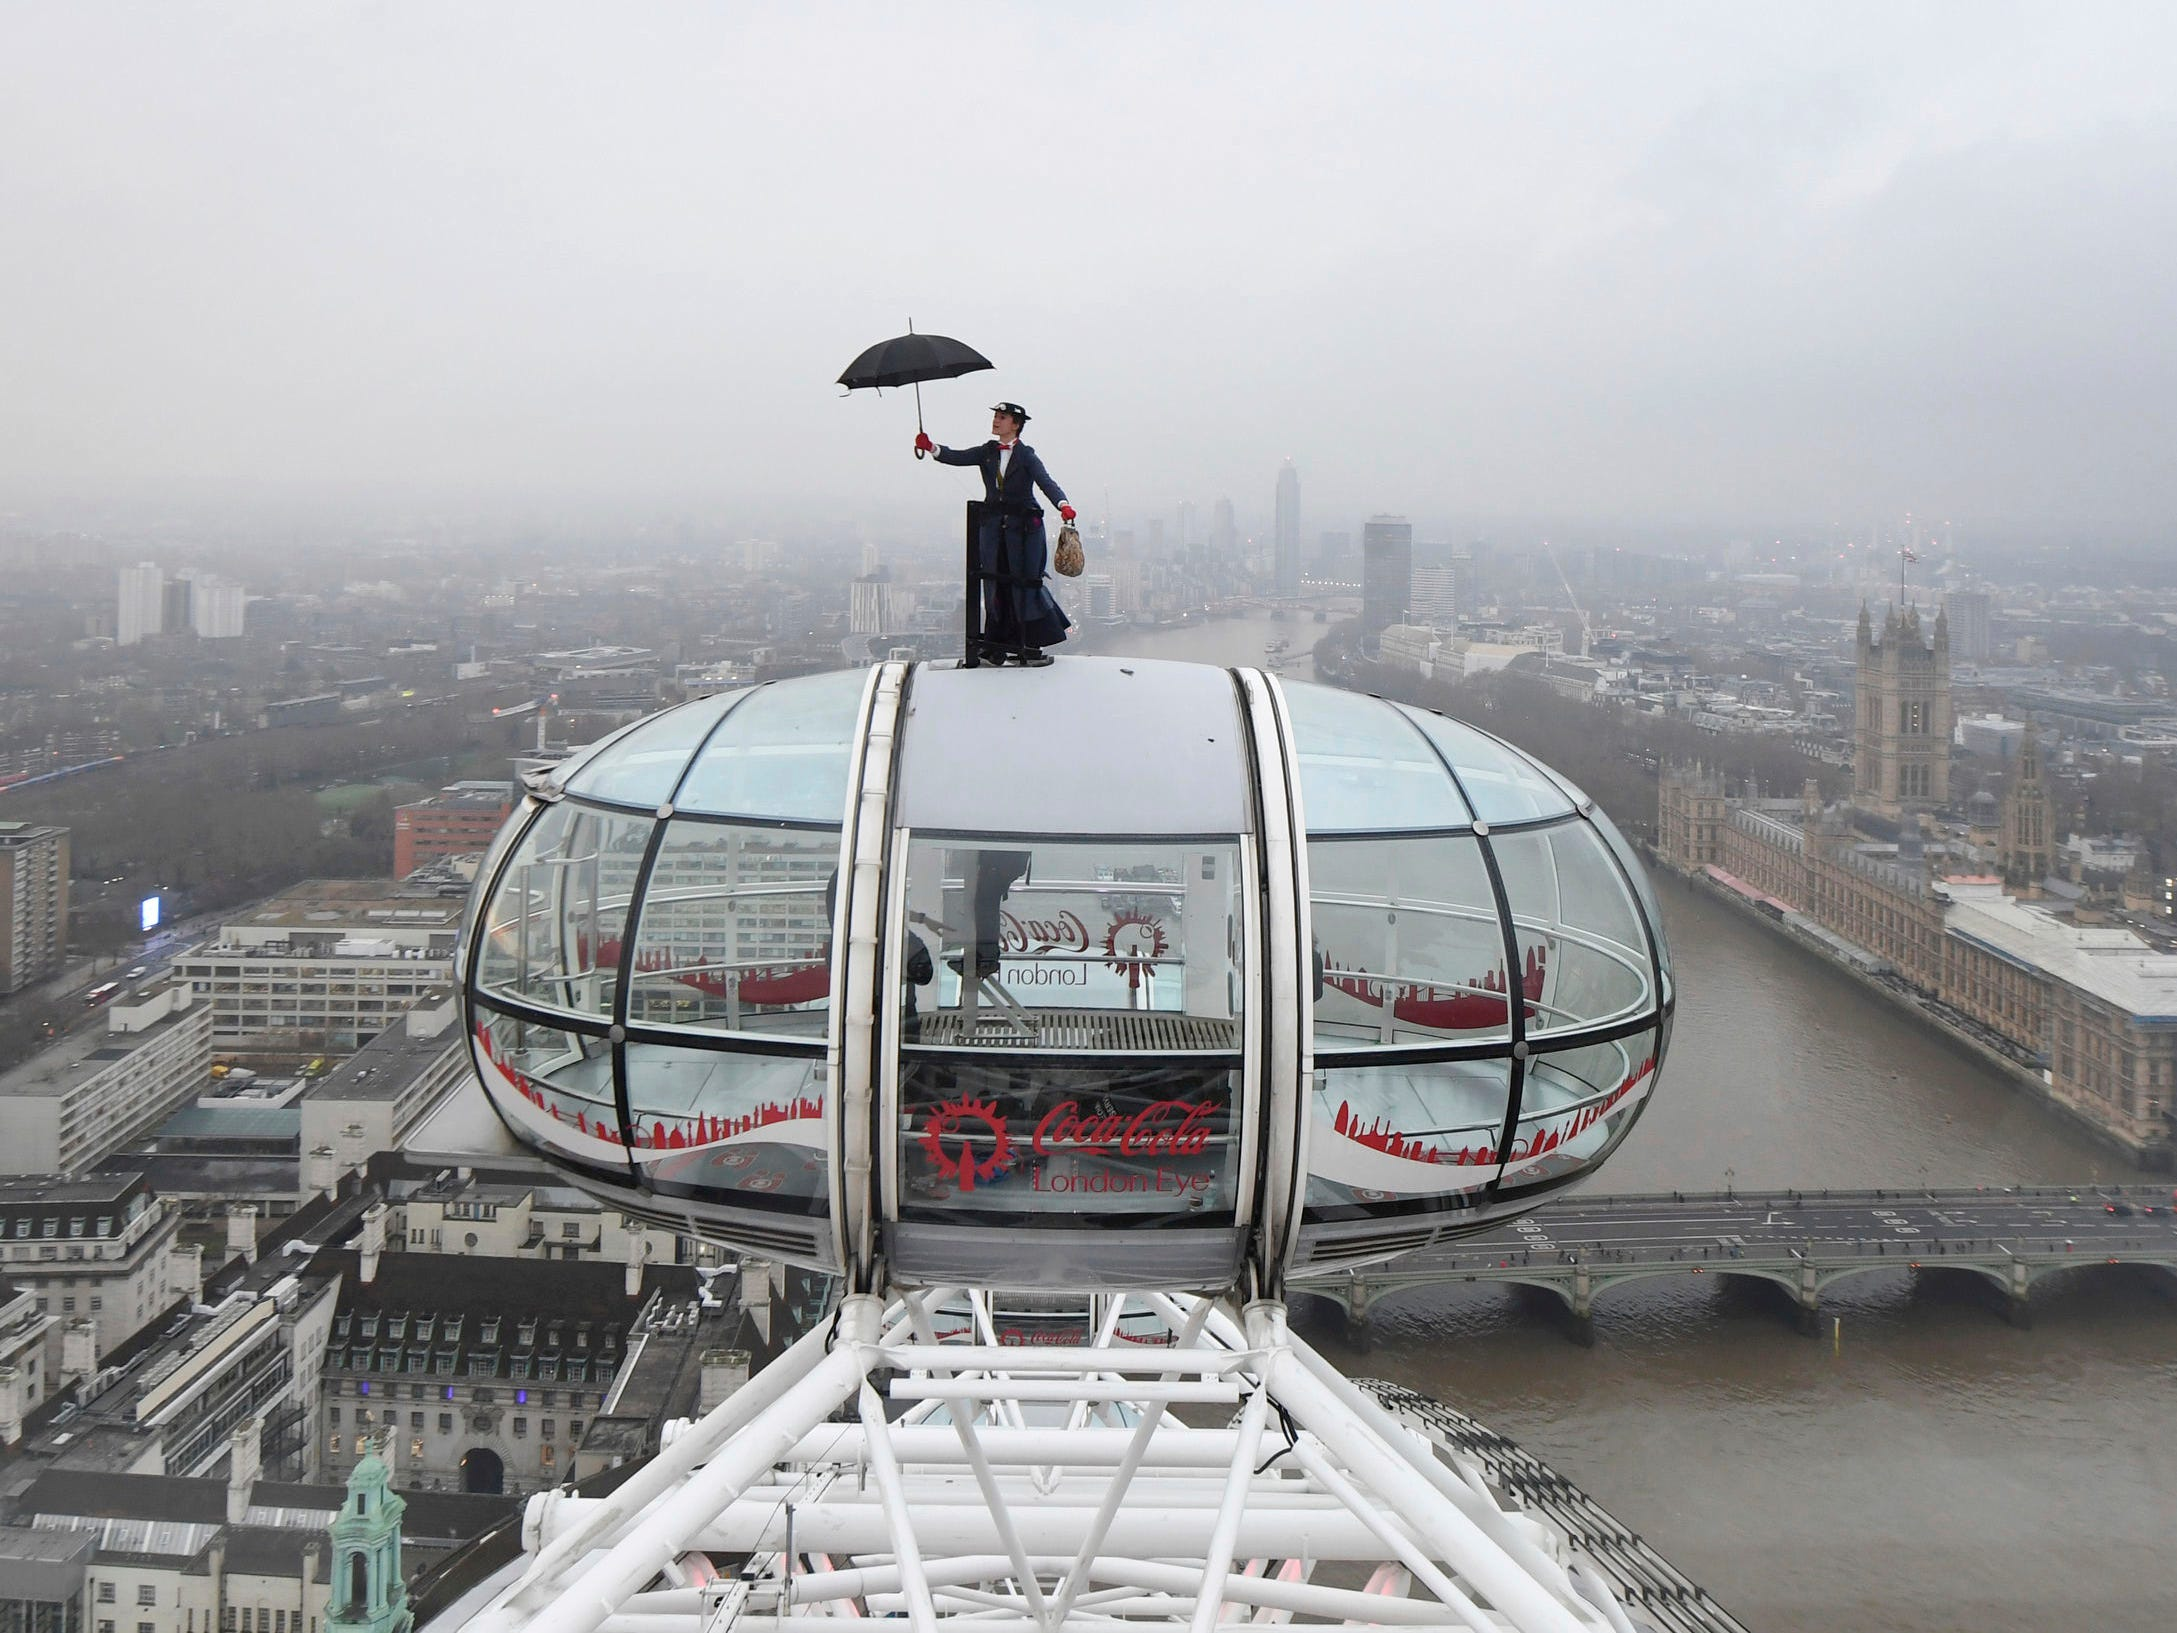 """Ahead of the European movie premiere of """"Mary Poppins Returns,"""" a stunt double rides atop the London Eye in central London with the Houses of Parliament on the banks of the River Thames, right, Wednesday Dec. 12, 2018."""